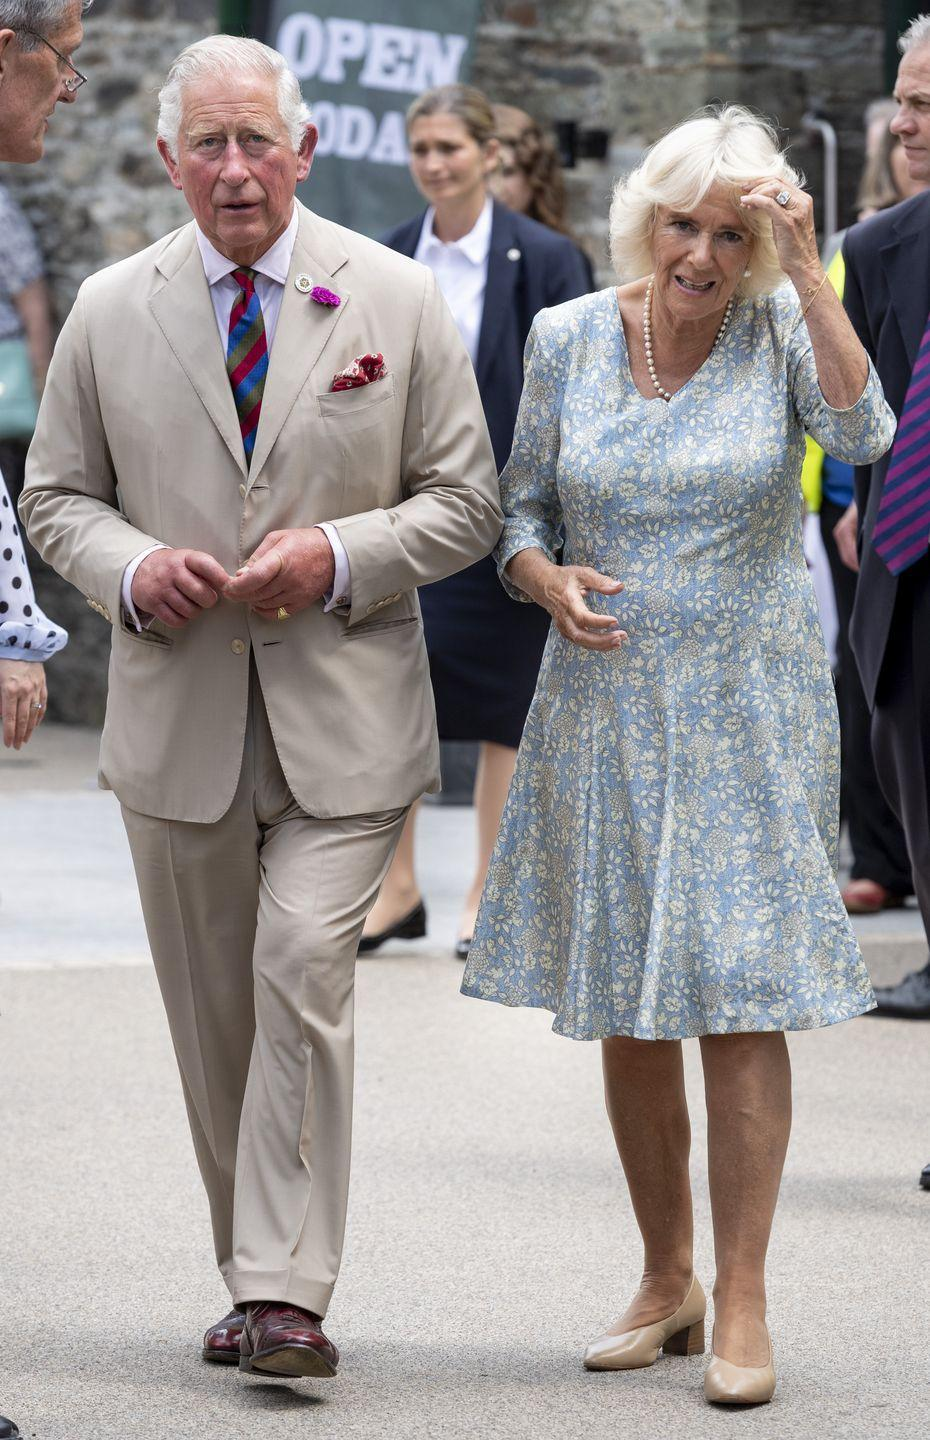 <p>During her visit to Cornwall, Camilla and Prince Charles went to the Festival of Food and Crafts. She dressed in a sky blue floral midi dress, paired with an elegant string of pearls and beige heels.</p>